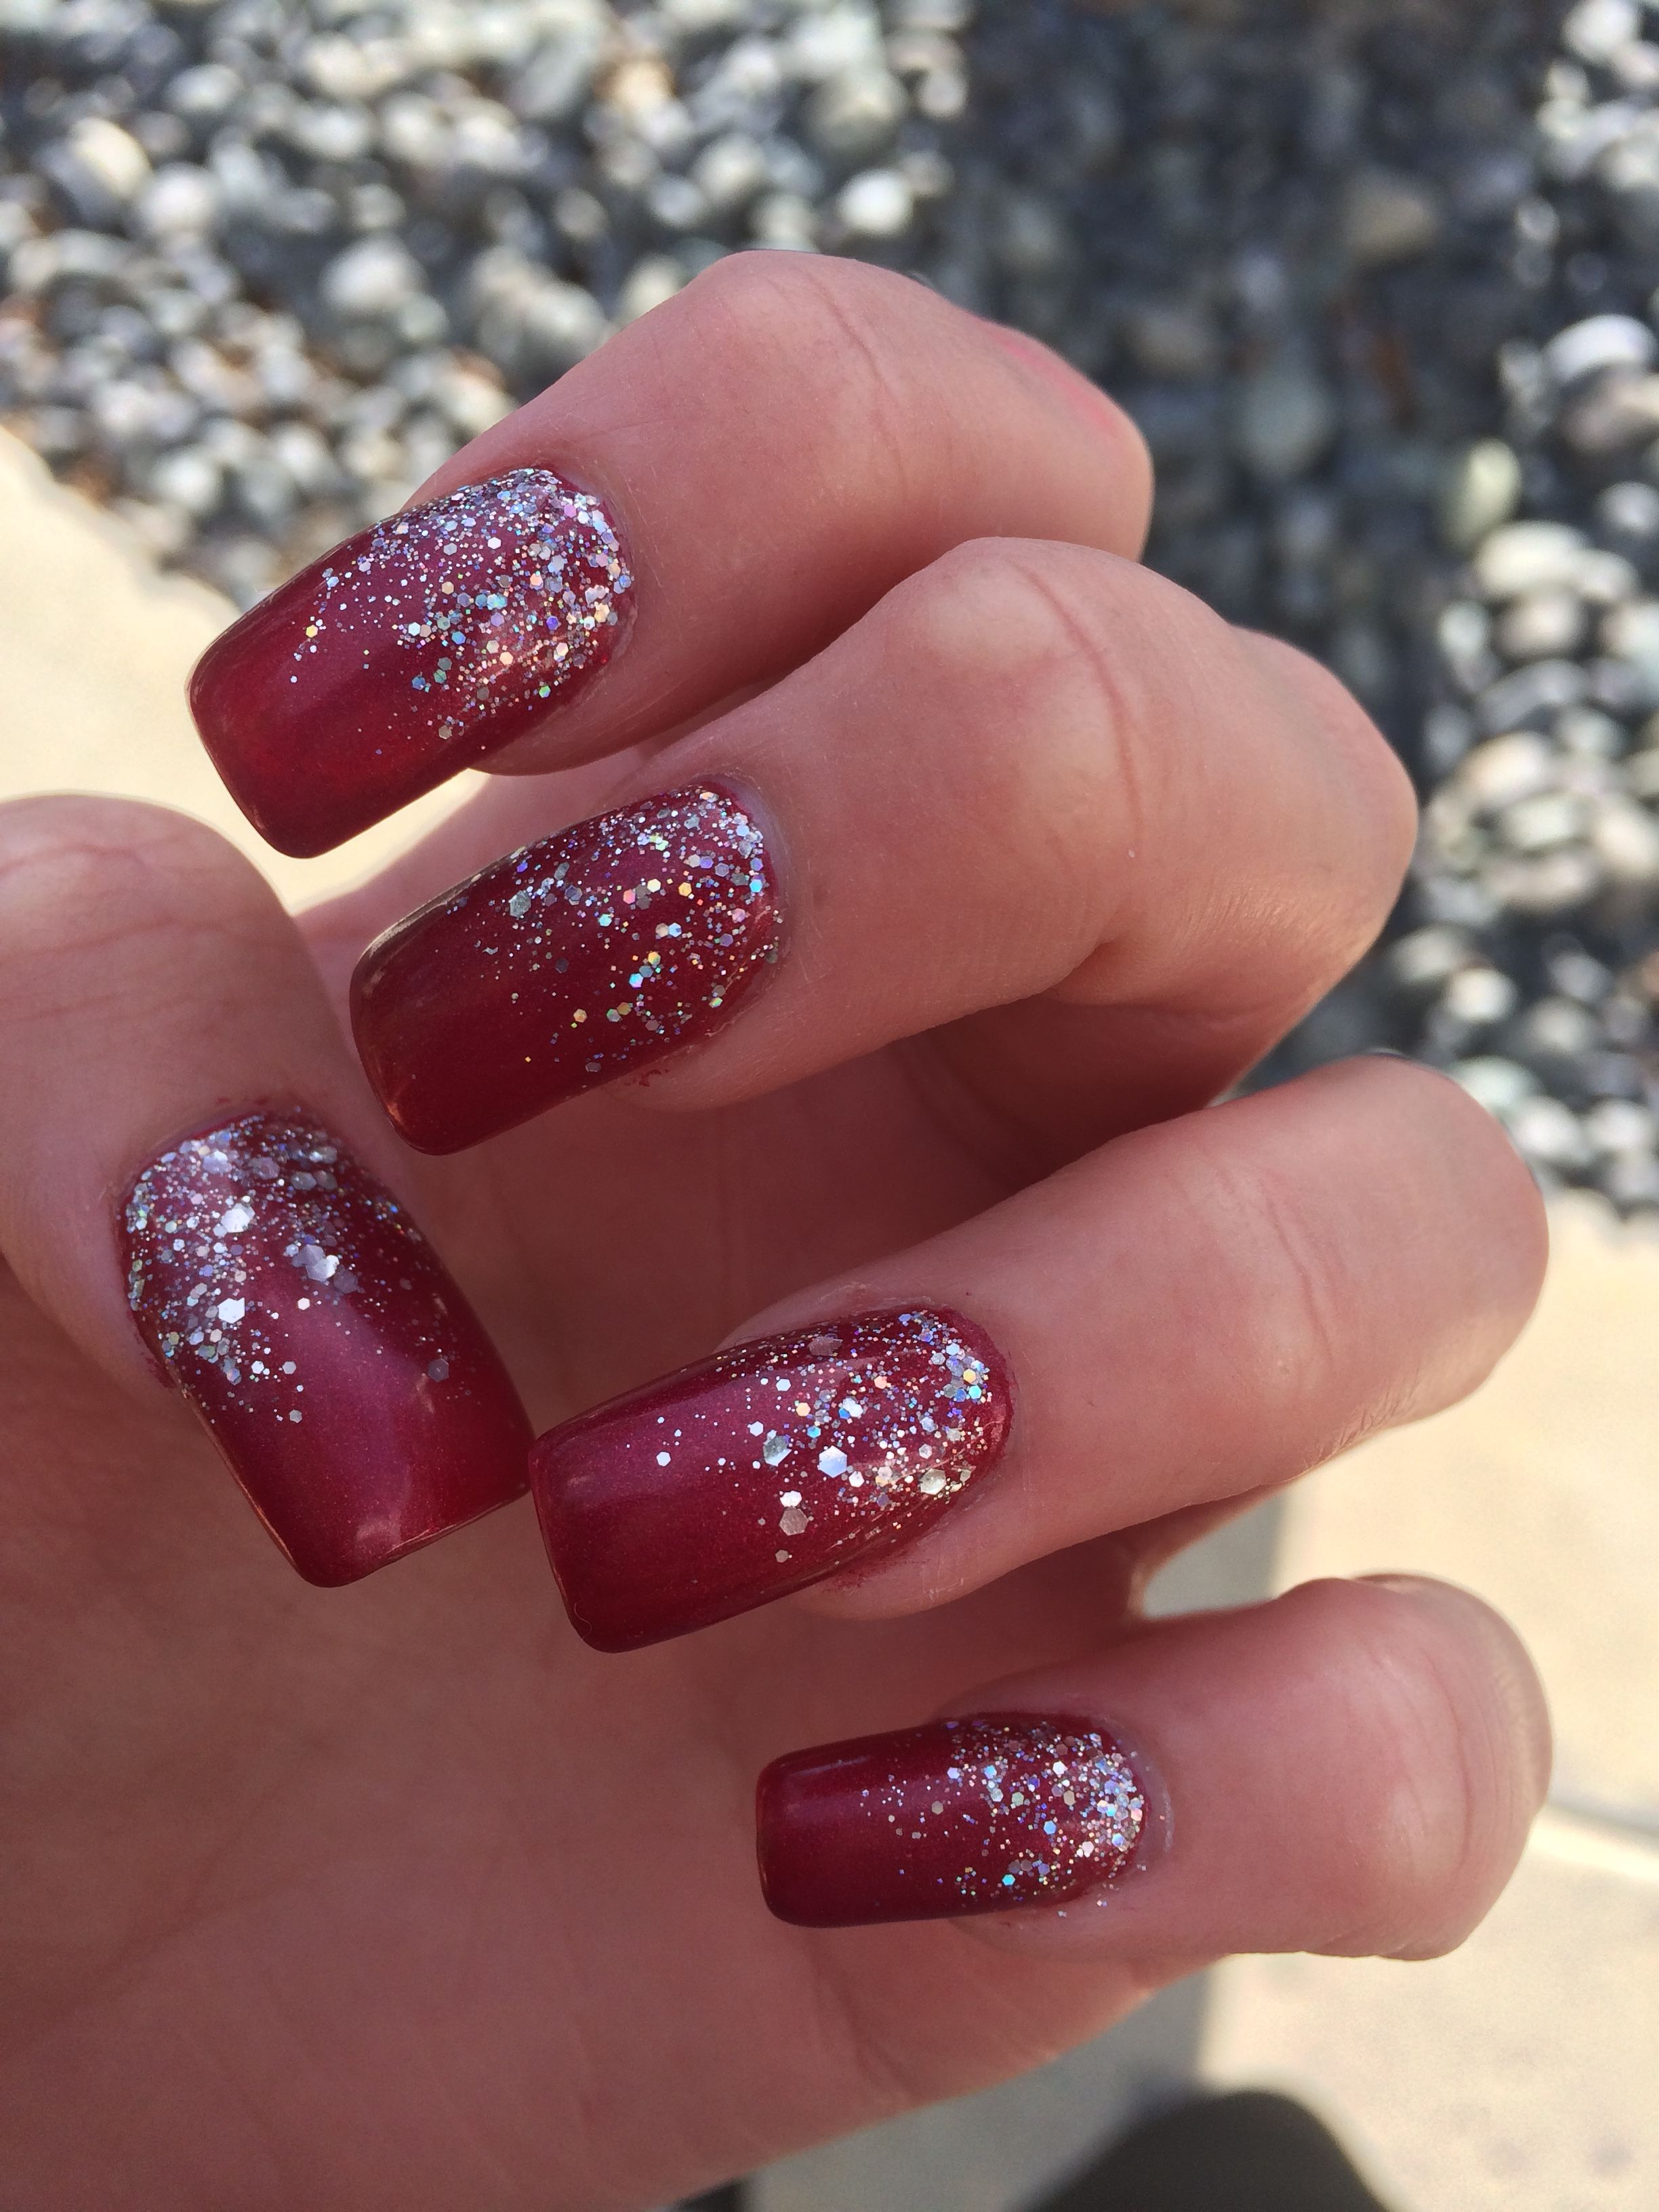 Deep red gel acrylics with sparkles ❤ #nails #gel #acrylic #red ...